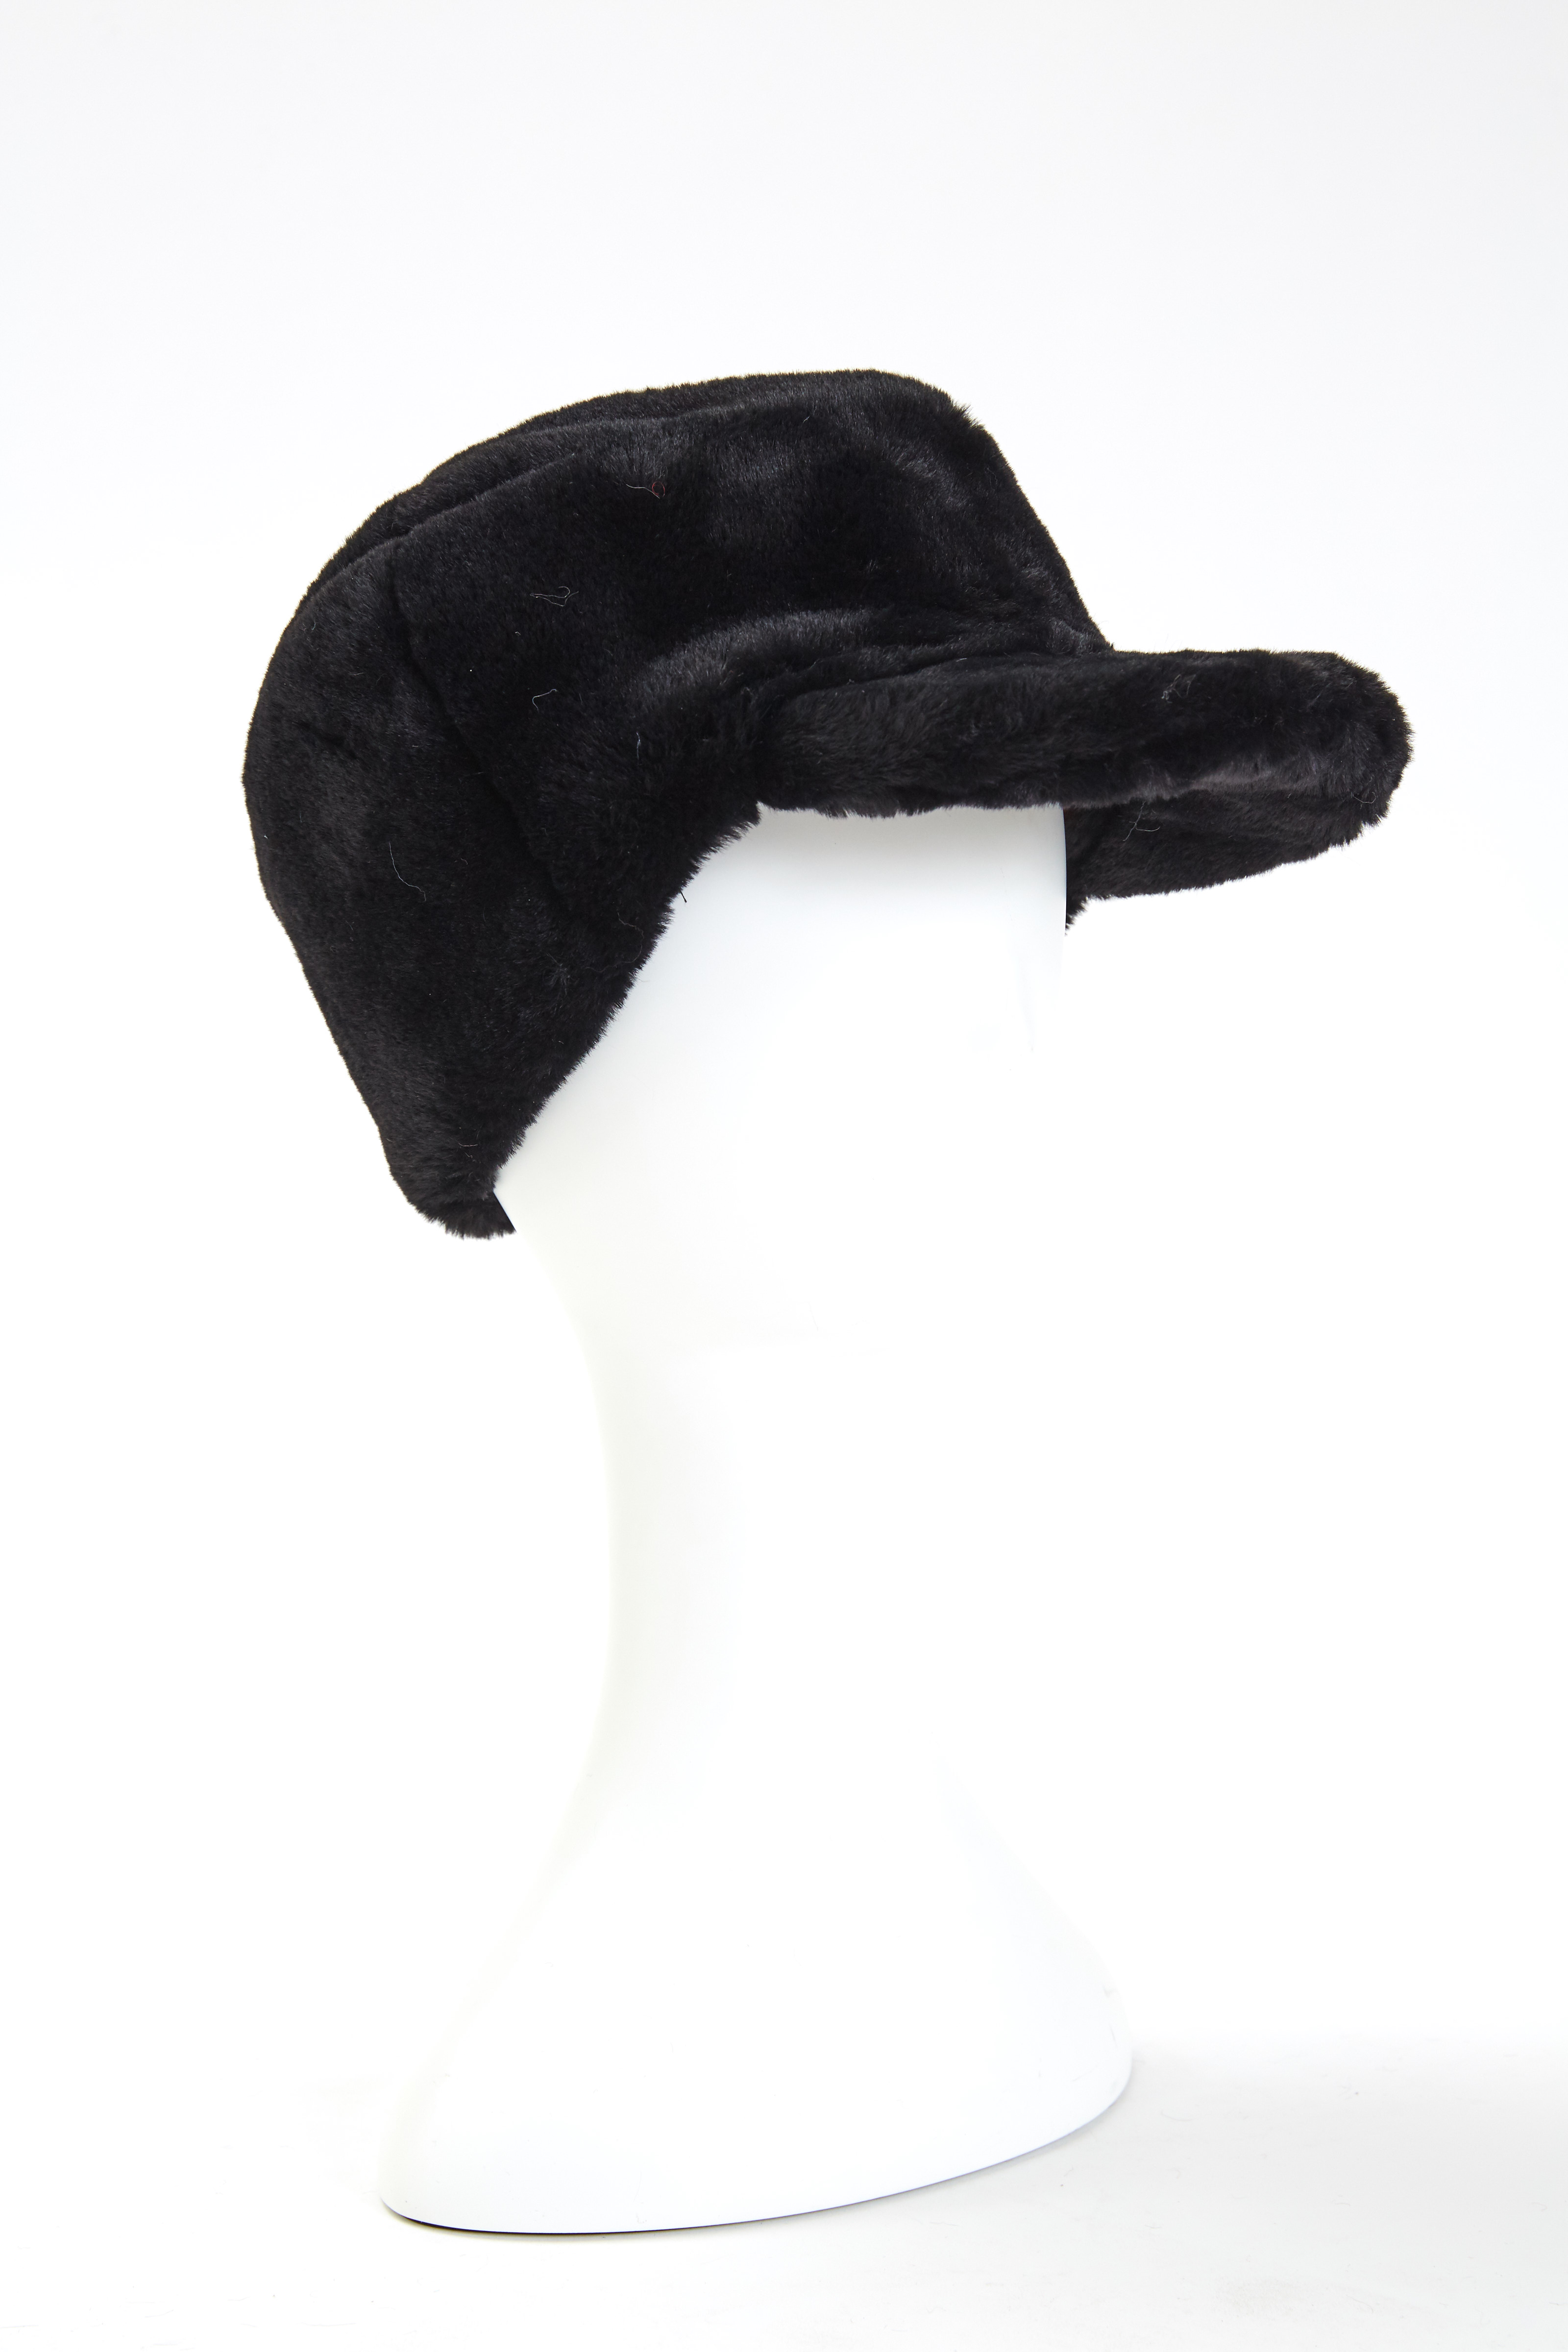 Baseball Cap - Black by Maison Atia on curated-crowd.com